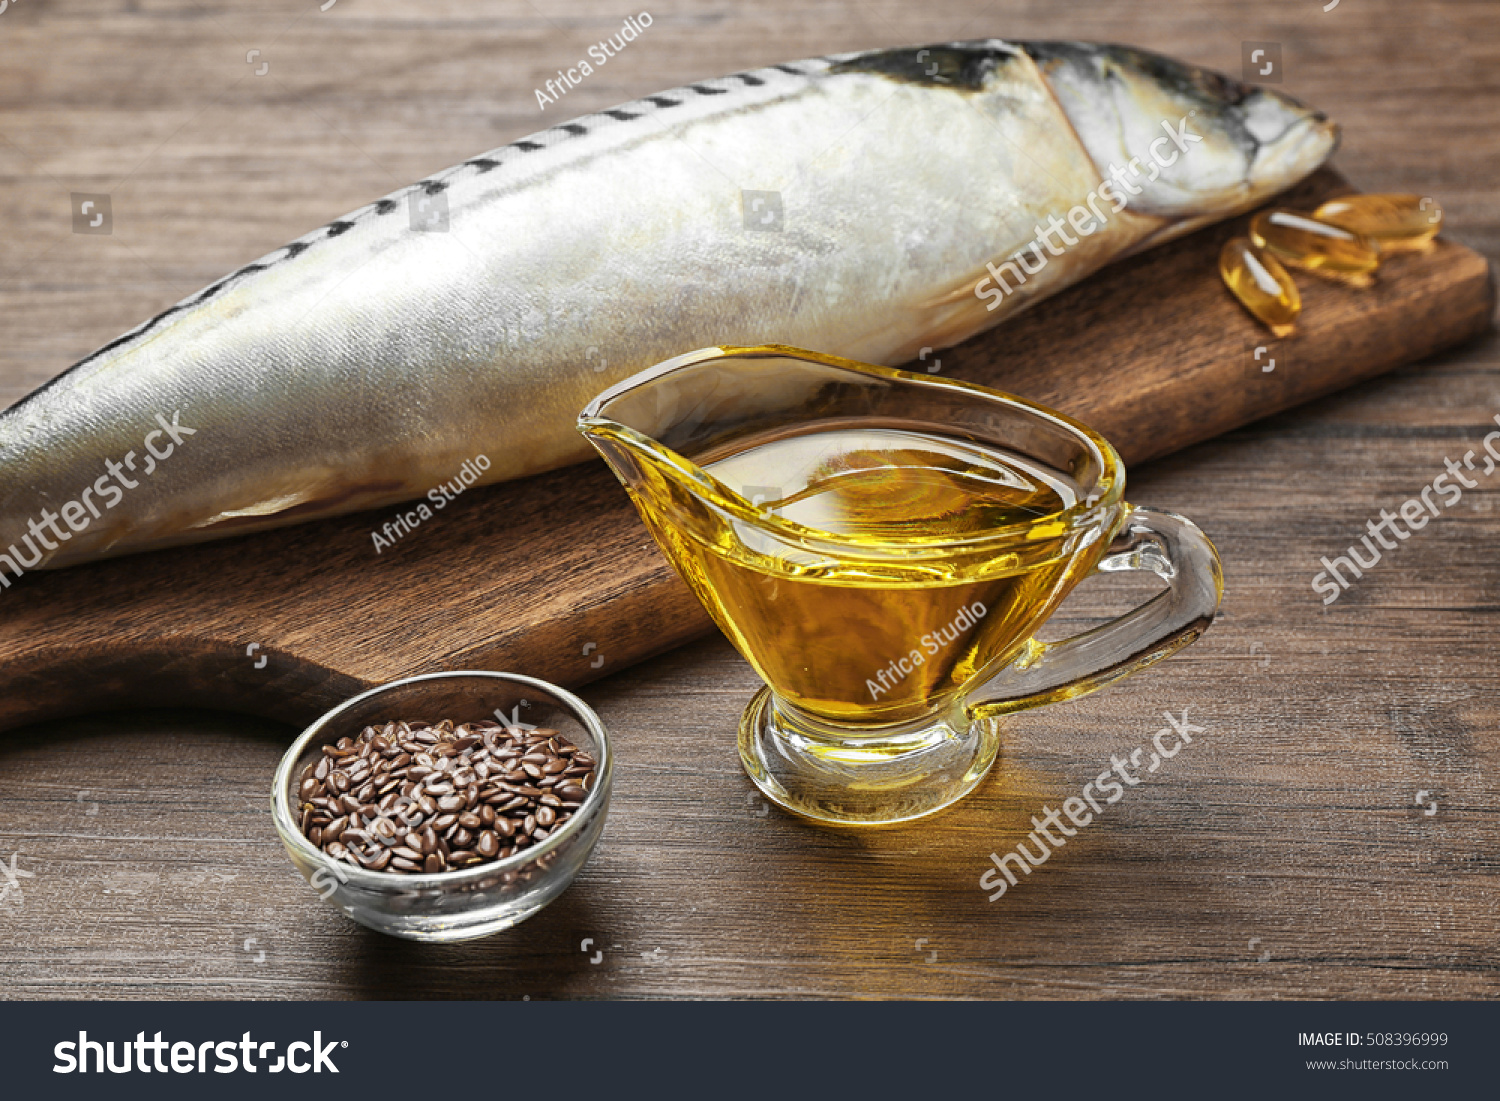 Fish oil with flax grain and fish on wooden background #508396999